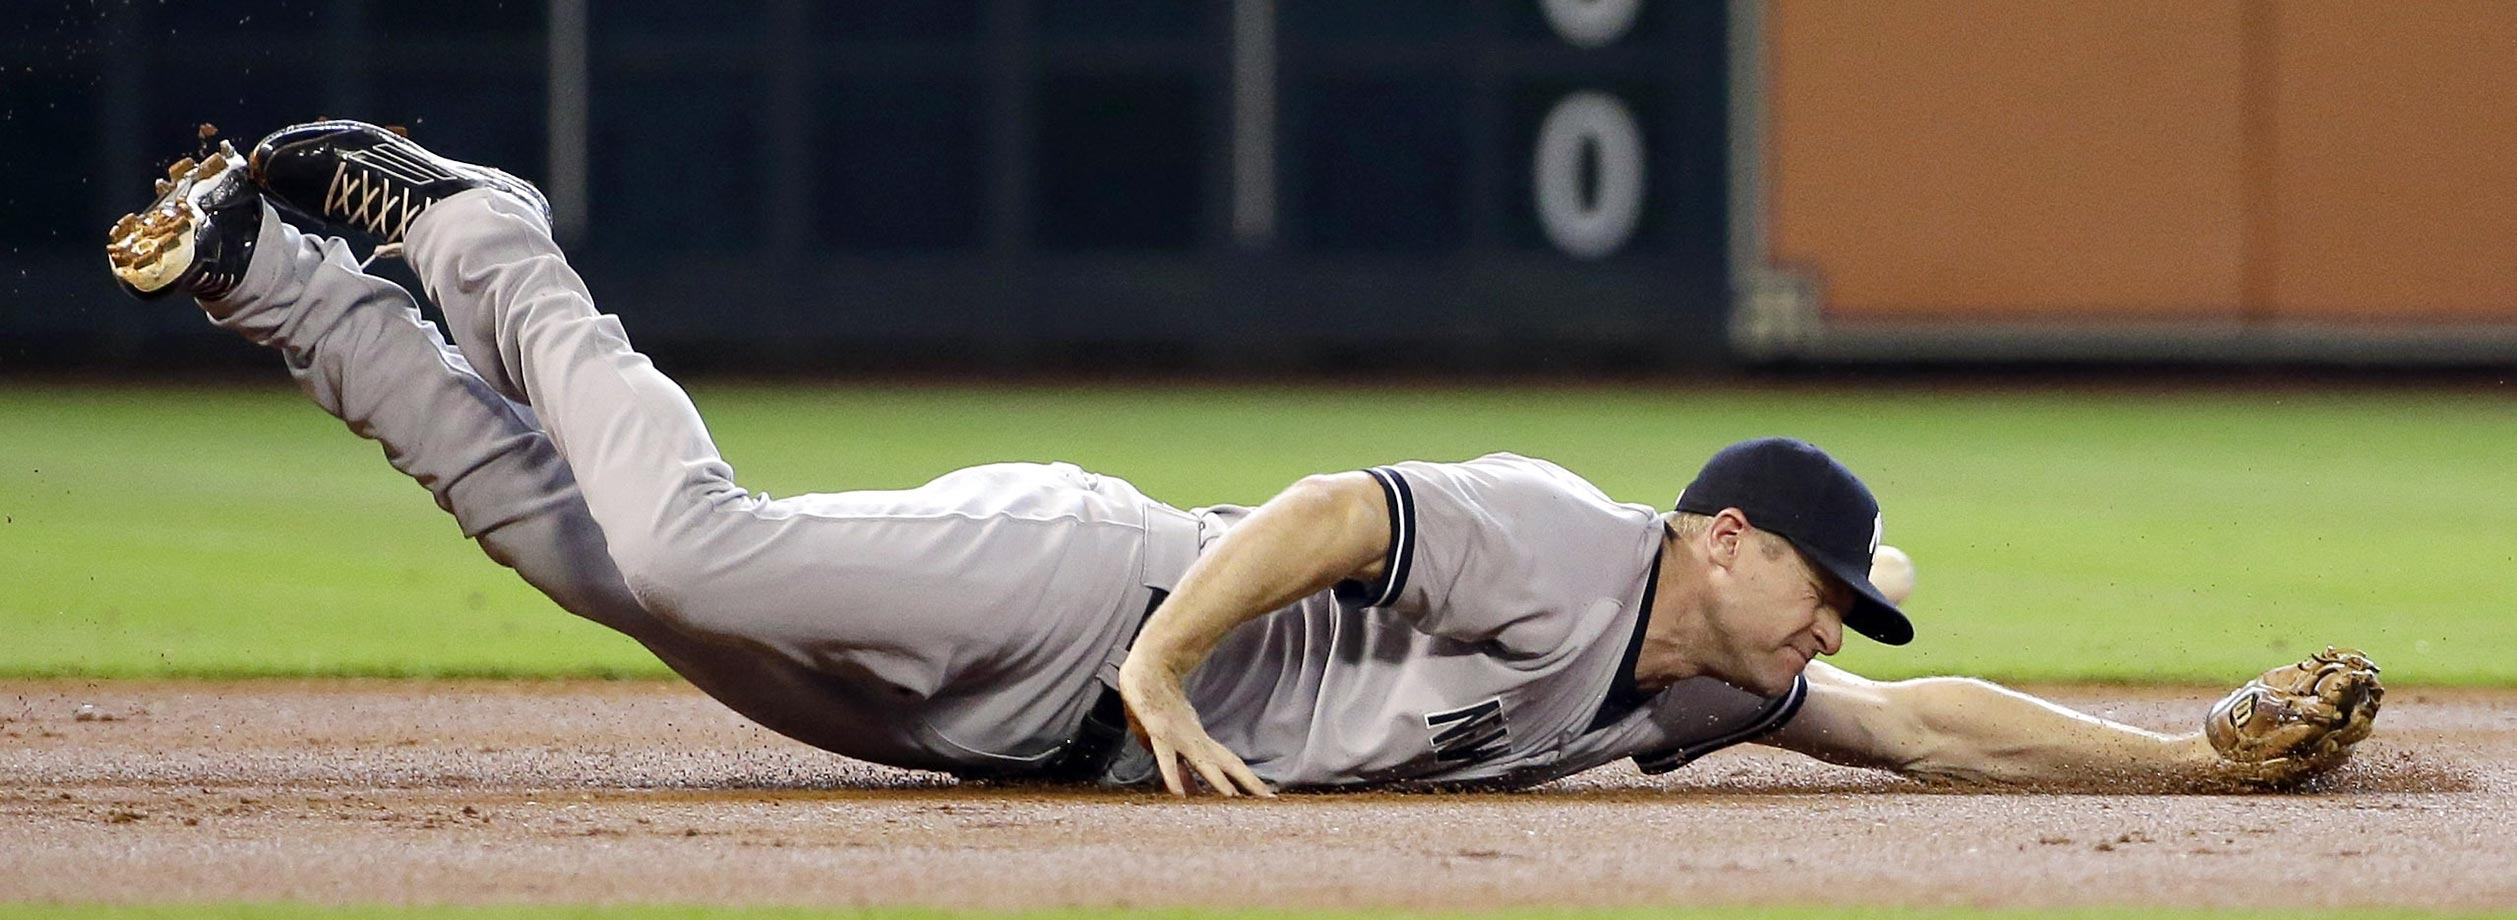 Chase Headley, June 28, 2015.